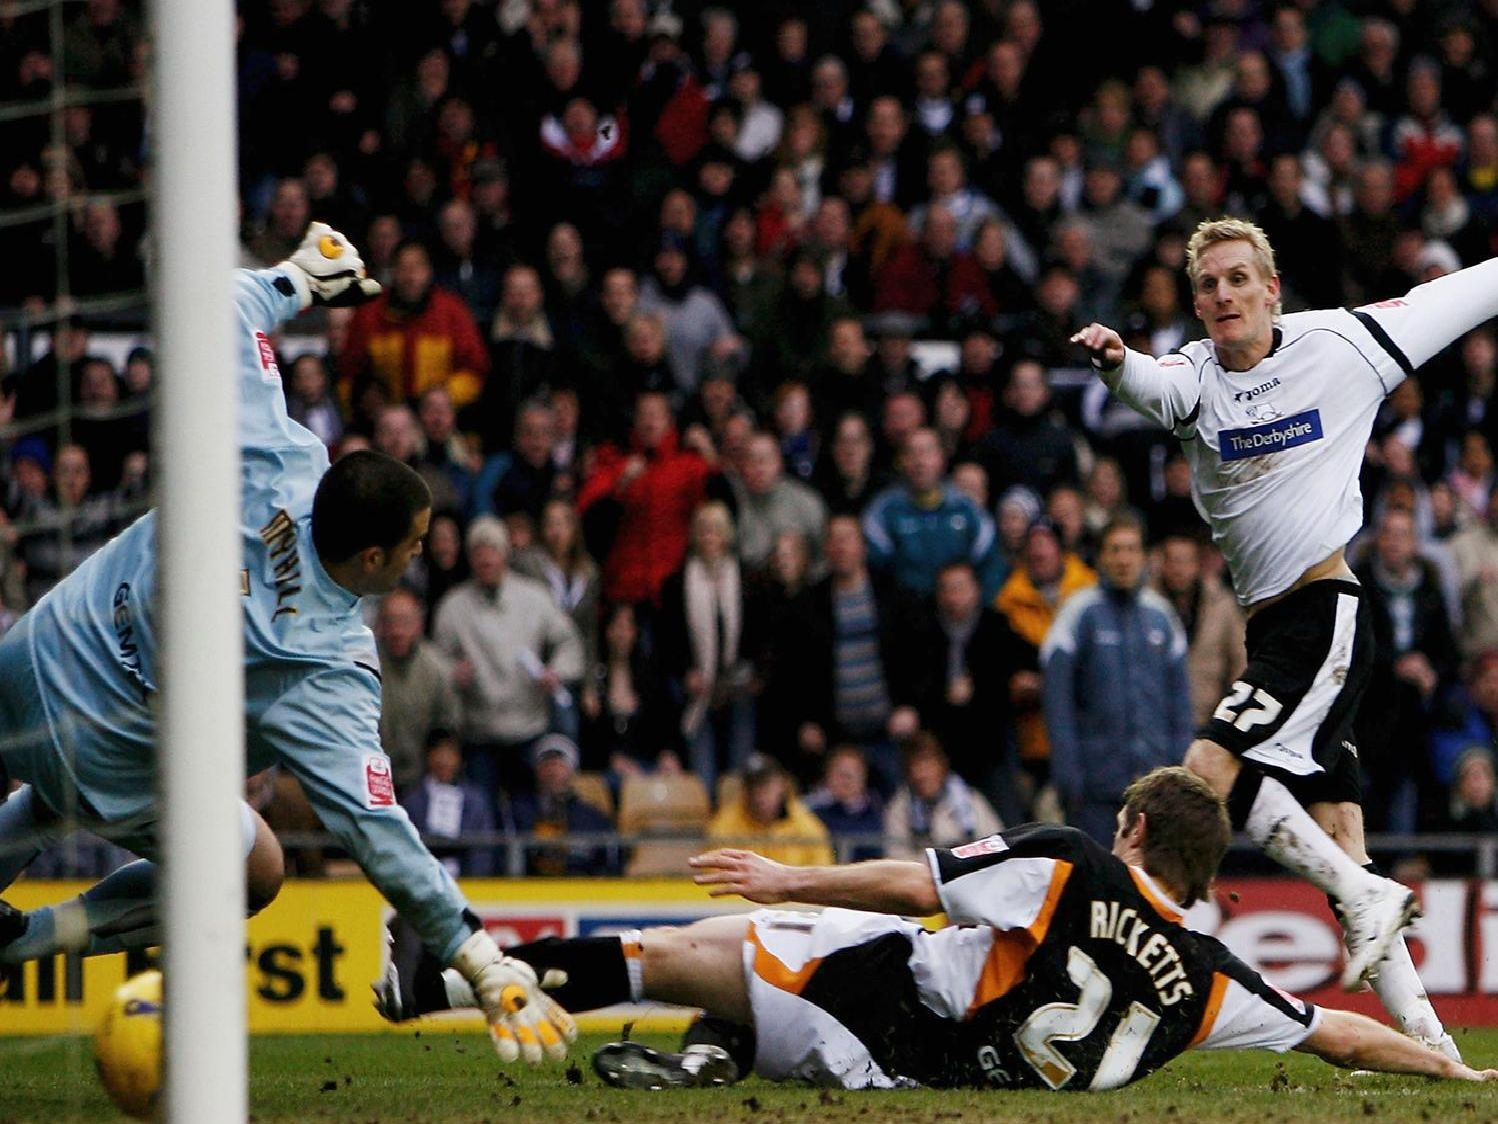 Gary Teale scores for Derby.